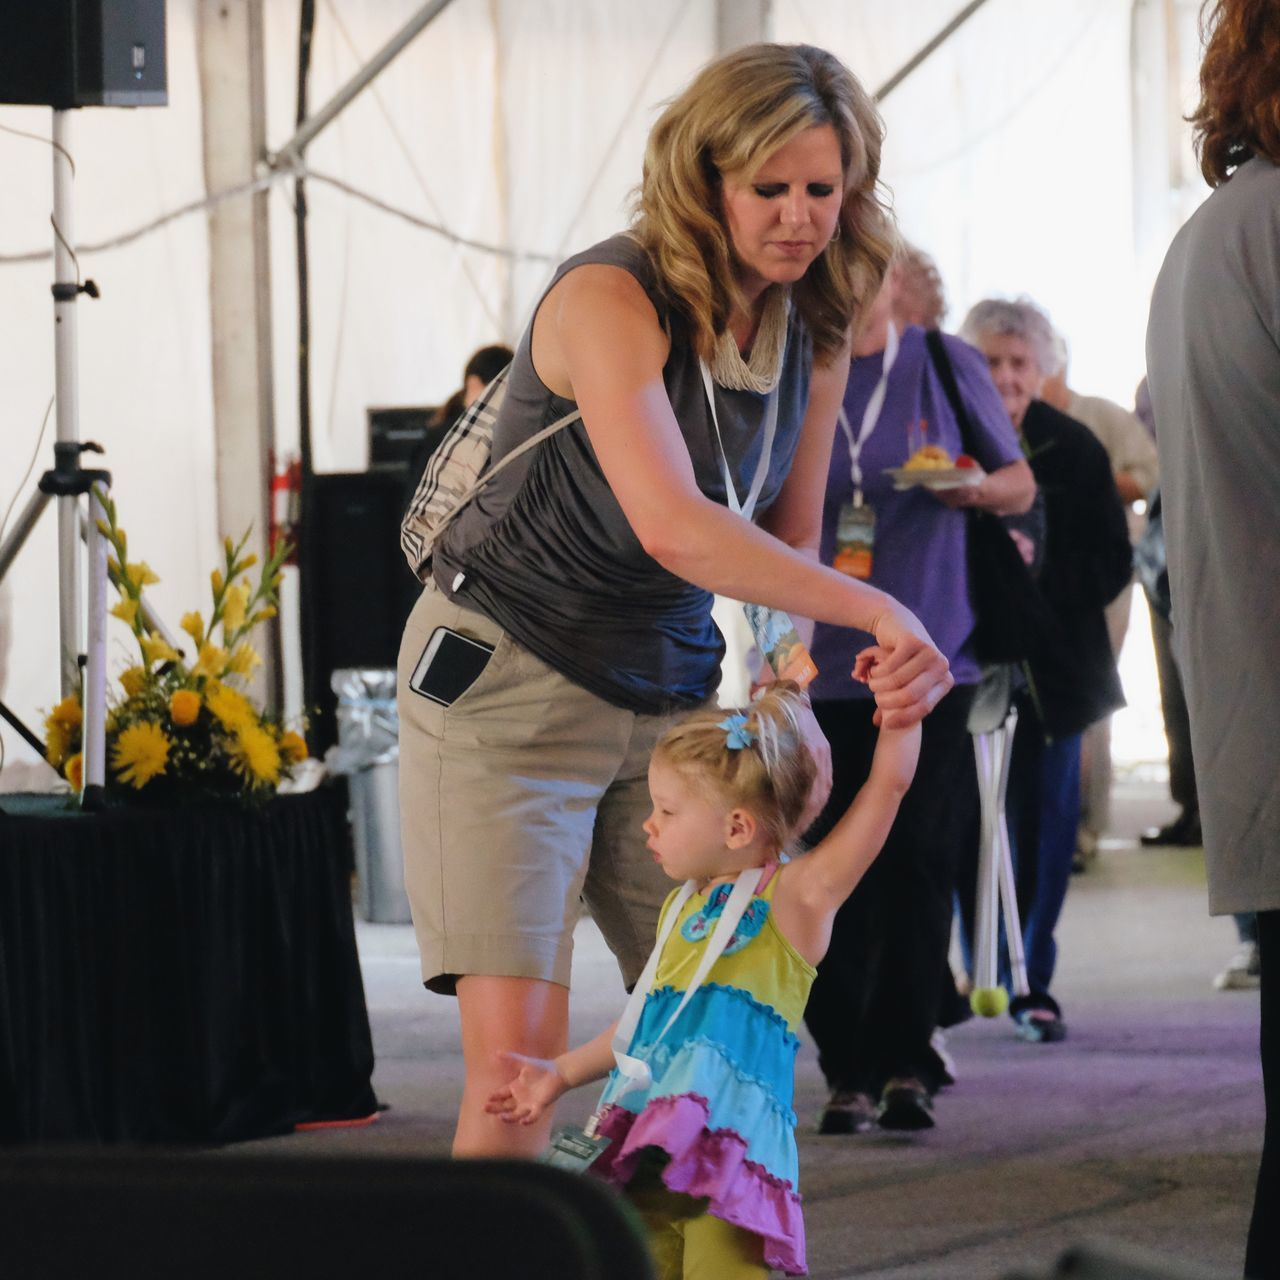 2017 Berkshire Hathaway Annual Shareholders Meeting Saturday, May 6, 2017 CenturyLink Center Omaha 455 North 10th Street Downtown Omaha, Nebraska http://www.berkshirehathaway.com/sharehold.html https://finance.yahoo.com/brklivestream Berkshire Hathaway Celebration Childhood Cocktail Party Cute Girl Dancing Around The World Daughter Documentary Documentary Photography Girls Having A Good Time Having Fun Lifestyles Money Around The World Mother Music Omaha, Nebraska Party - Social Event Photojournalism Real People Social Issues Togetherness Twirling Women Woodstock For Capitalists